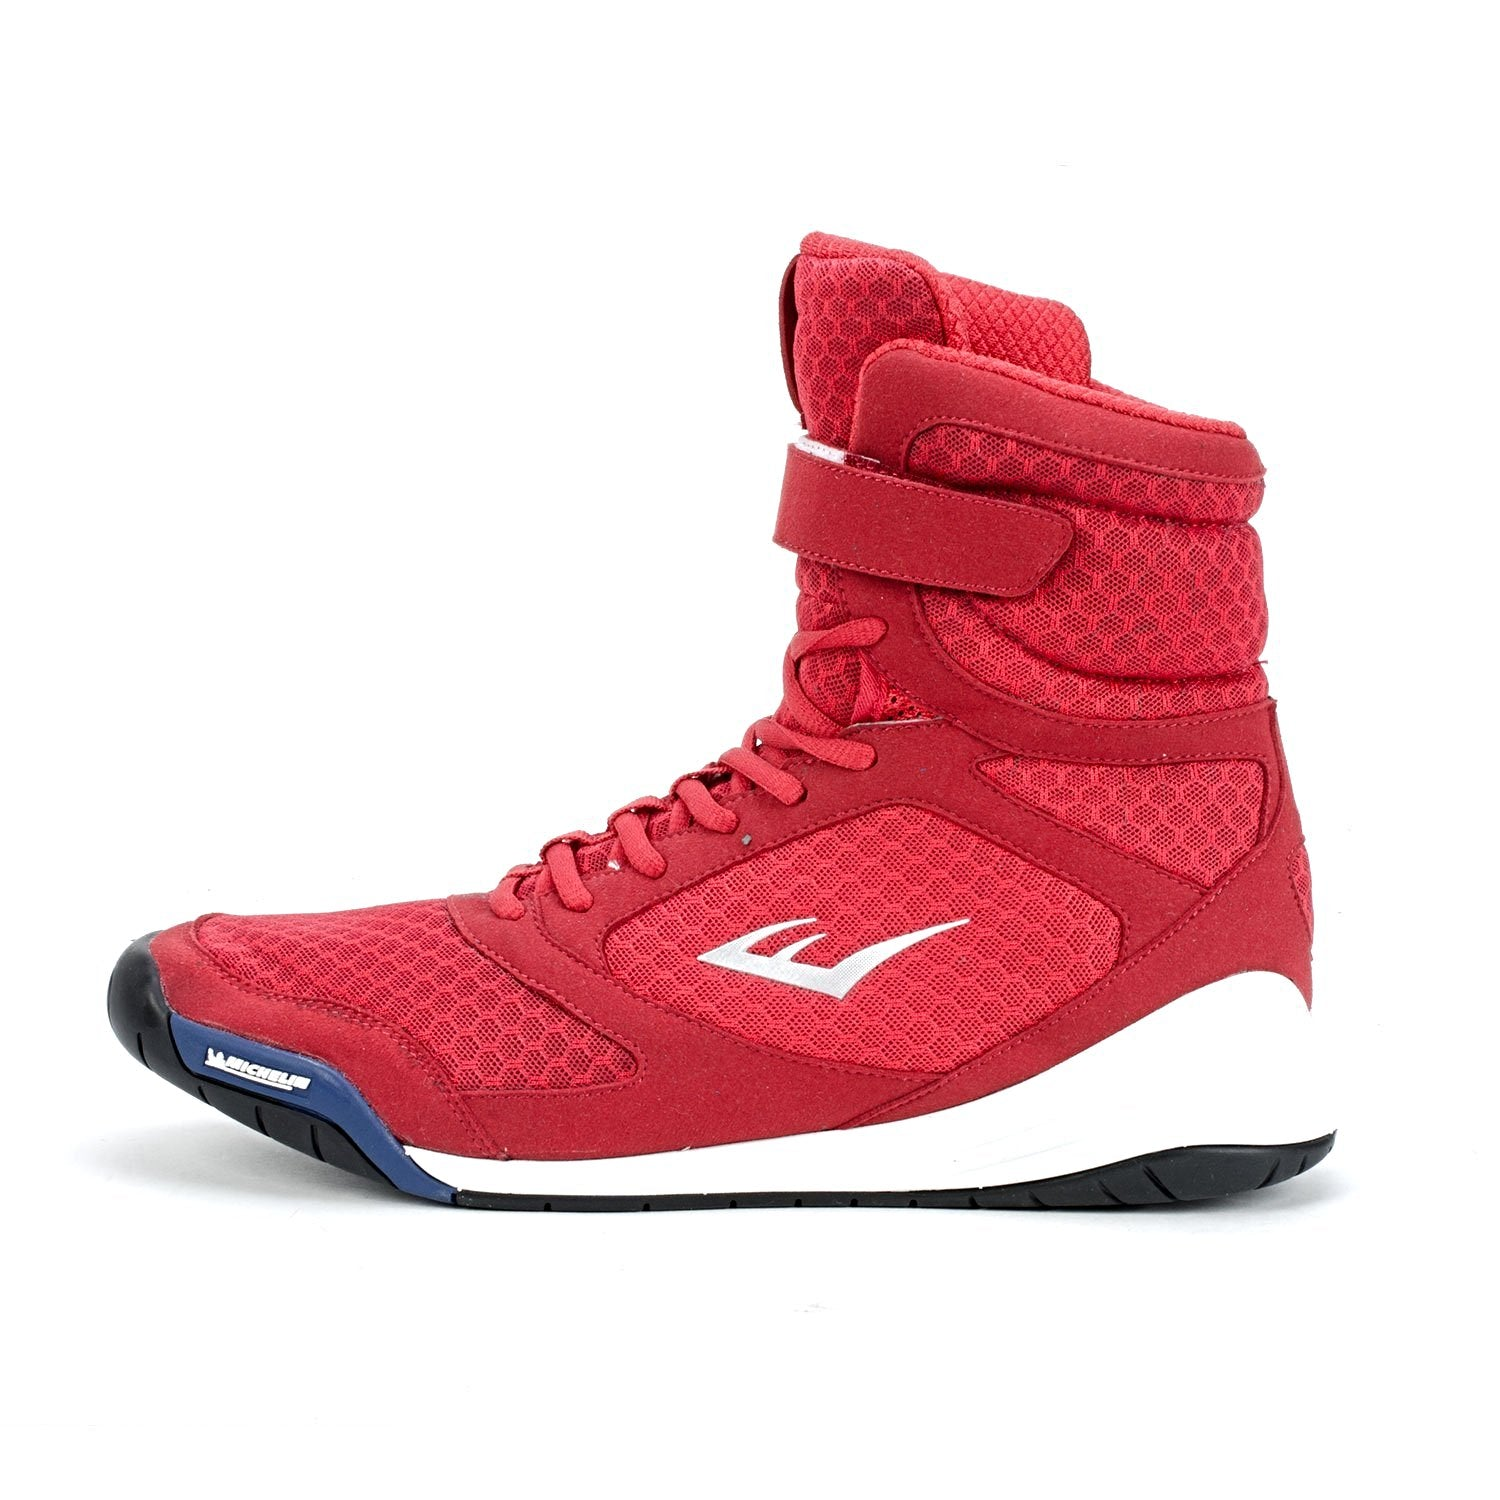 Everlast Elite Red High Top Boxing Shoe